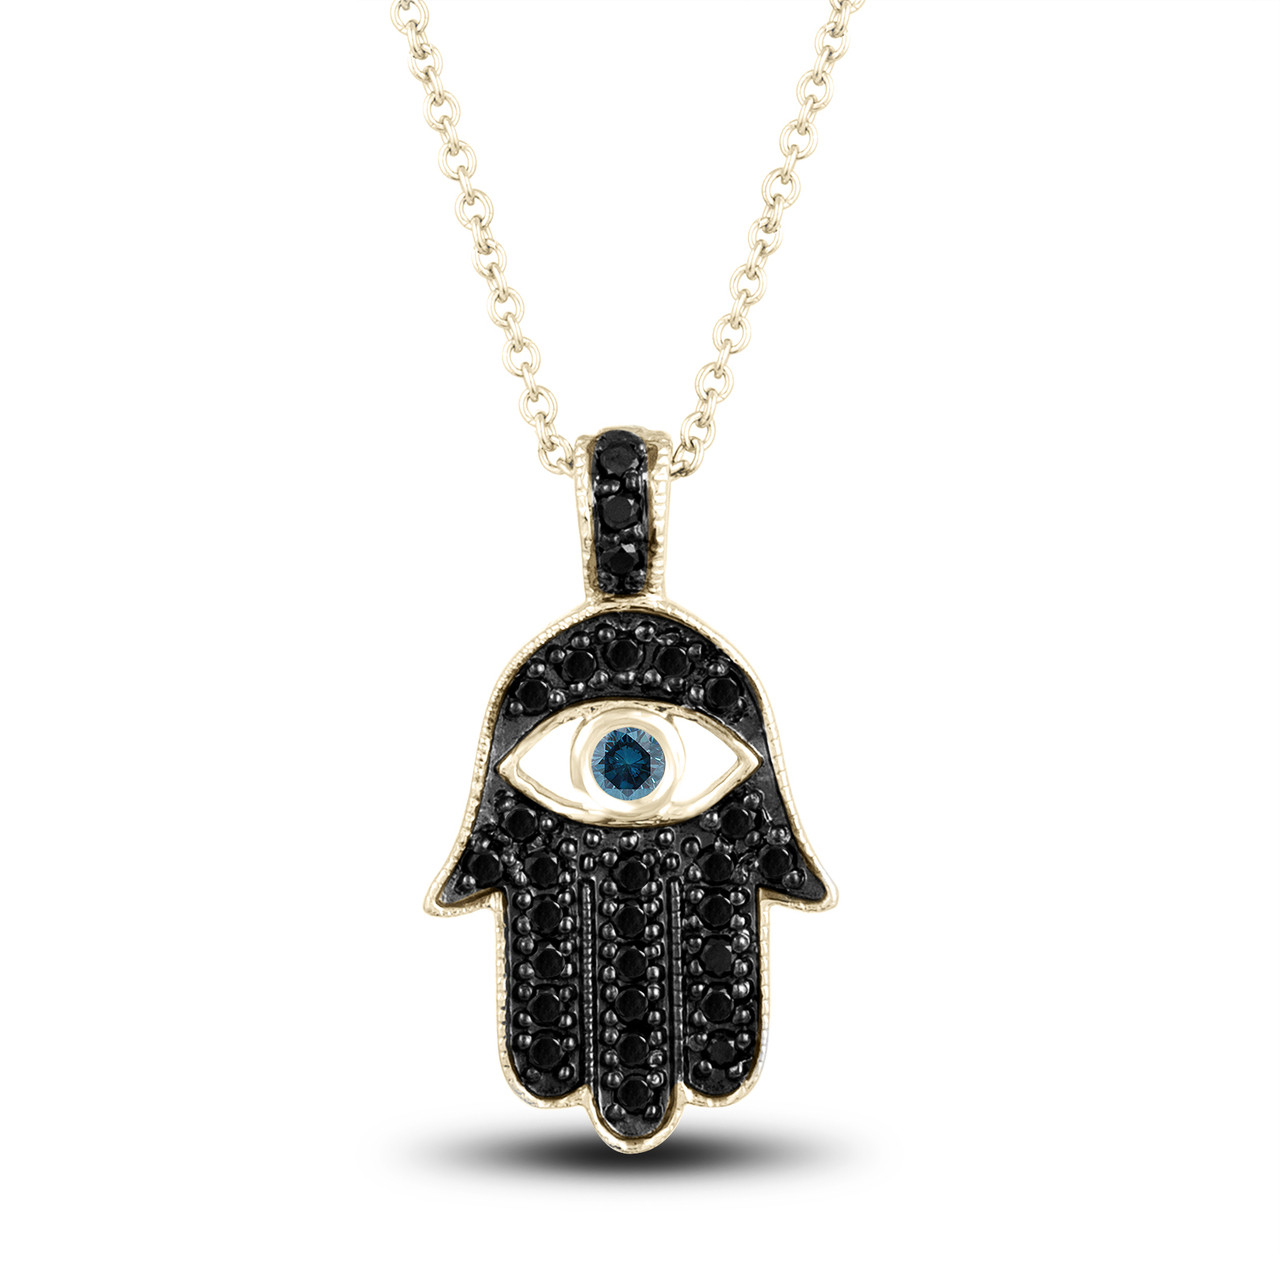 Fancy black diamond hamsa pendant necklace blue diamond eye 036 fancy black diamond hamsa pendant necklace blue diamond eye 036 carat 14k yellow gold unique handmade pave set mozeypictures Images